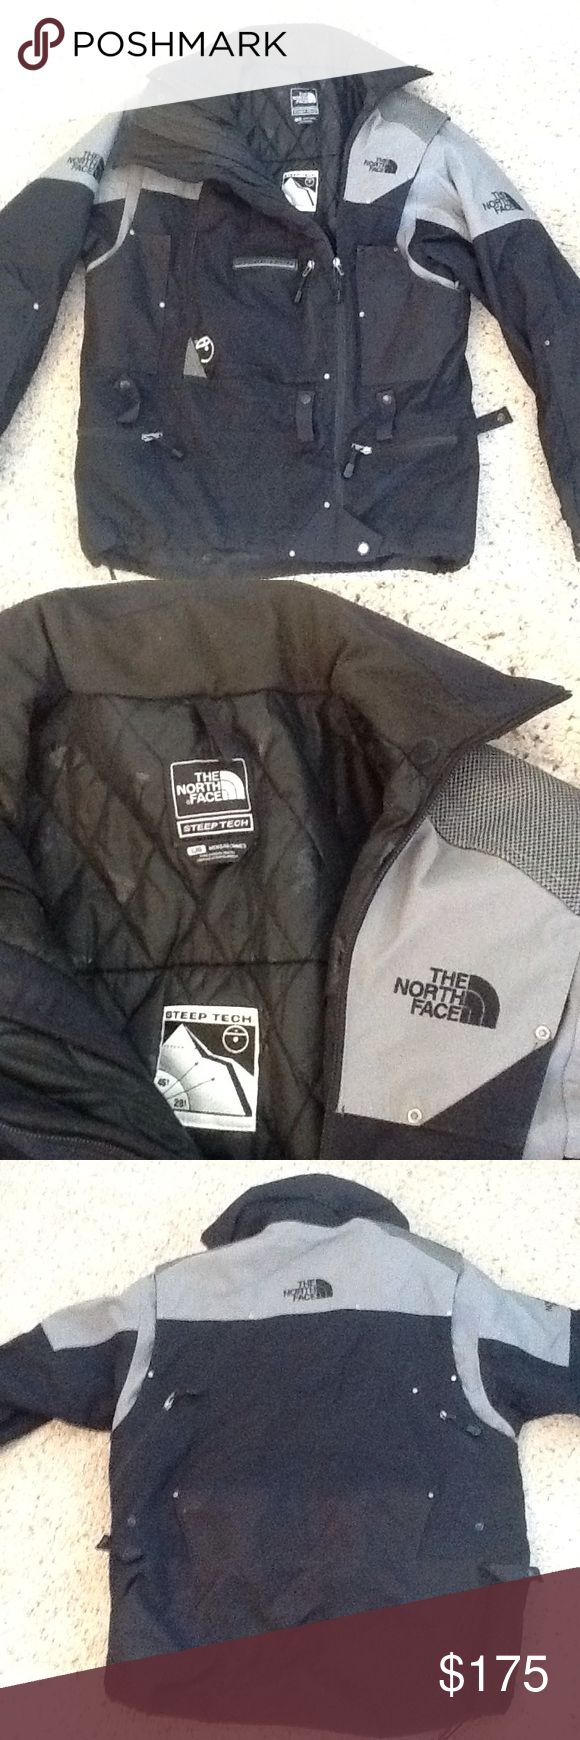 THE NORTH FACE STEEP TECH DOWN BLACK PARKA COAT THE NORTH FACE Steep Tech Down black parka coat. MENS sz Large, Excellent condition! Great coat! Will ship right away. Check out my other designer items The North Face Jackets & Coats Puffers